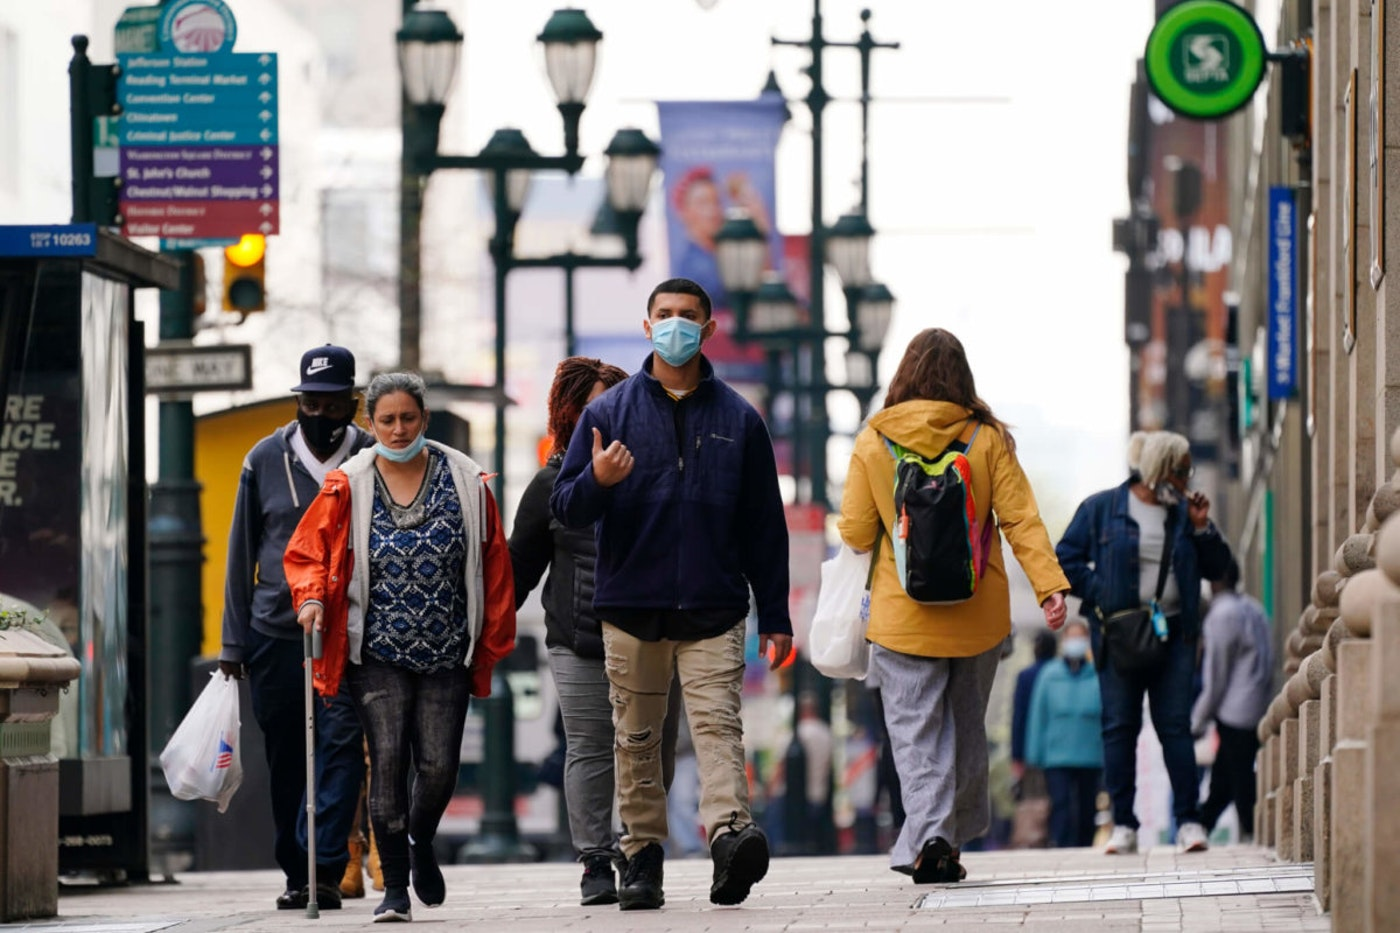 People walk along Market Street in Philadelphia. Pennsylvania got the official word from the US Census that its population growth continues to lag behind the nation's, marking the 10th consecutive decade the Keystone State has lost clout in Congress and presidential contests. (AP Photo/Matt Rourke, File)